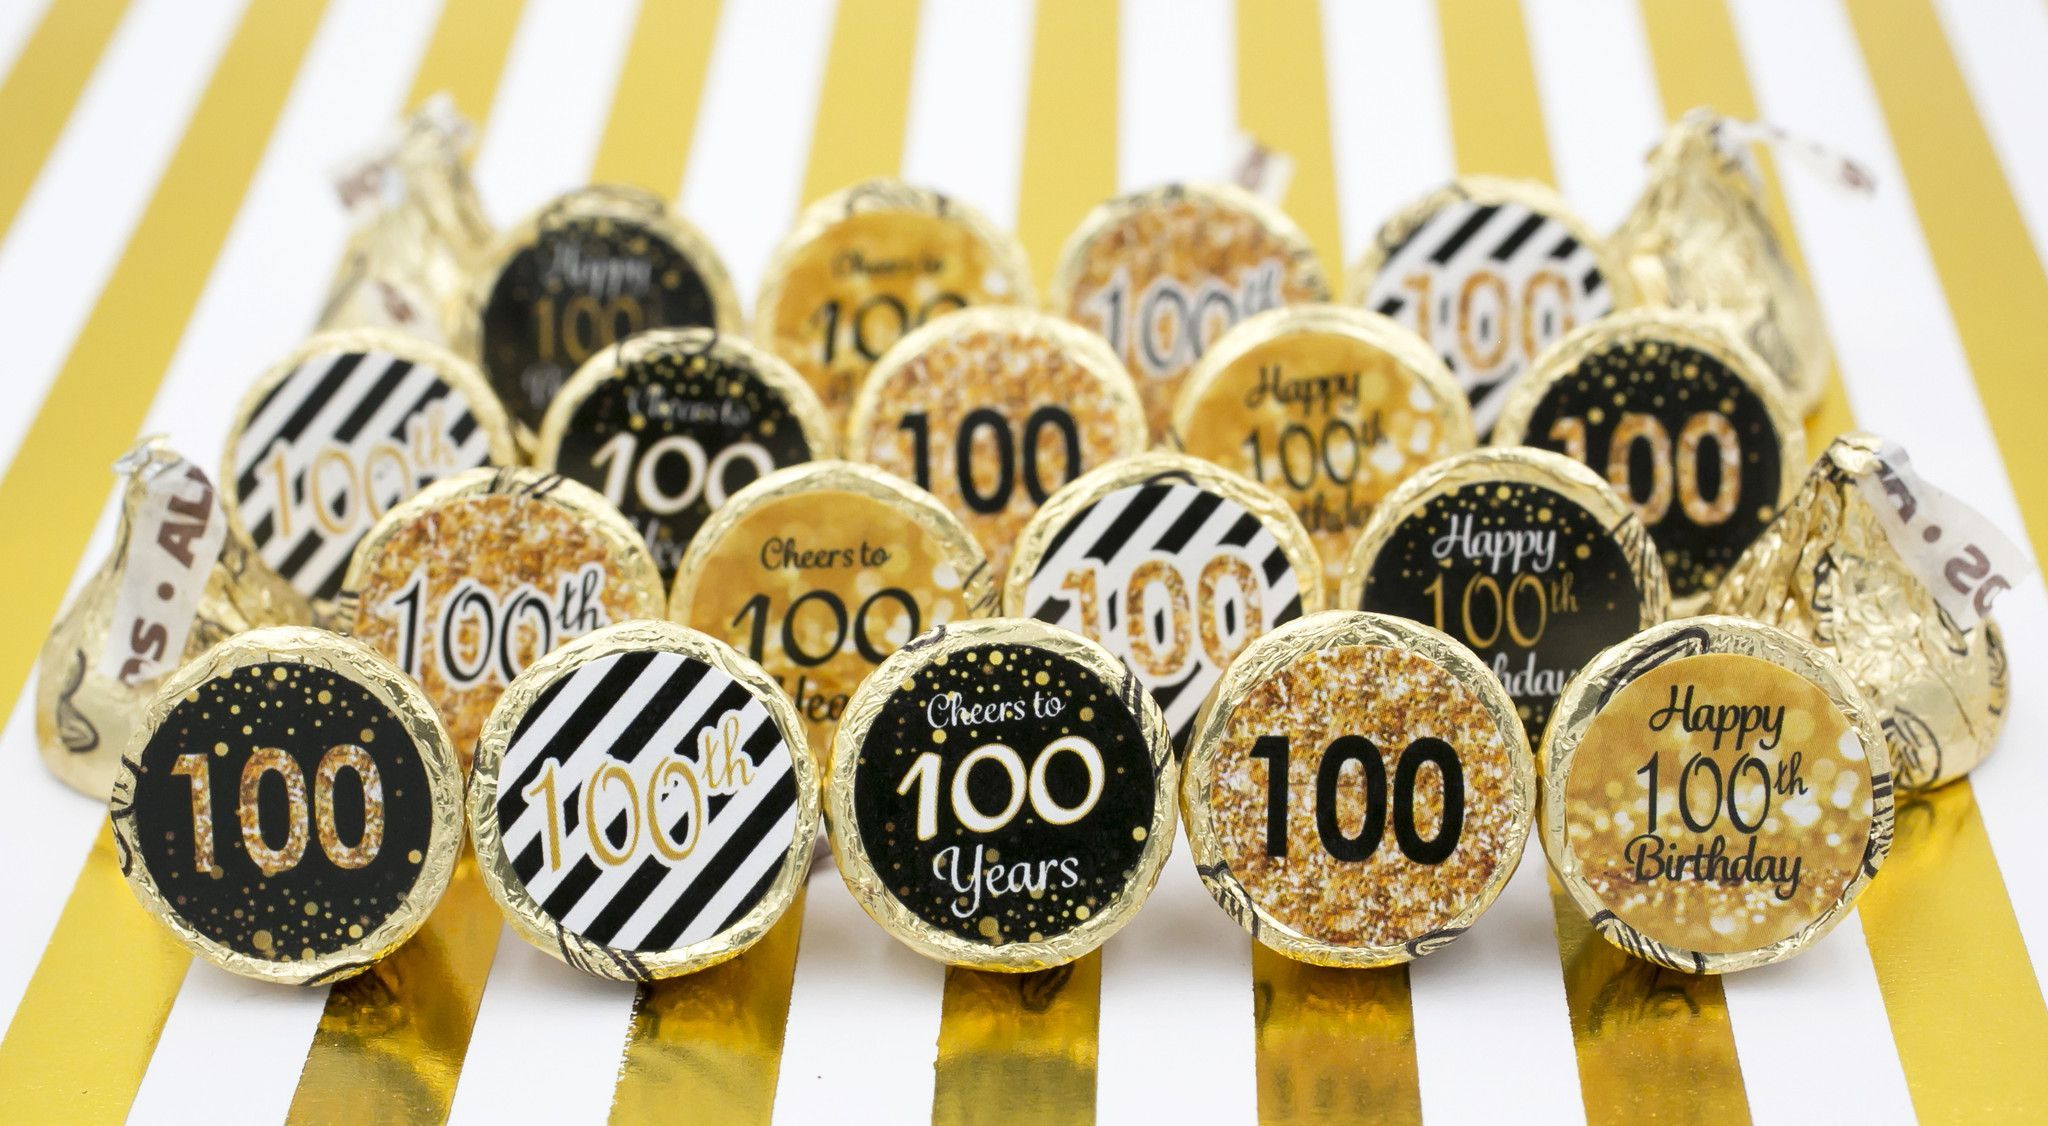 Celebrate this special birthday milestone with these gold and black 100th birthday party favor stickers that will be a sure hit at your party. Designed to fit perfectly on the bottom of Hershey kisses